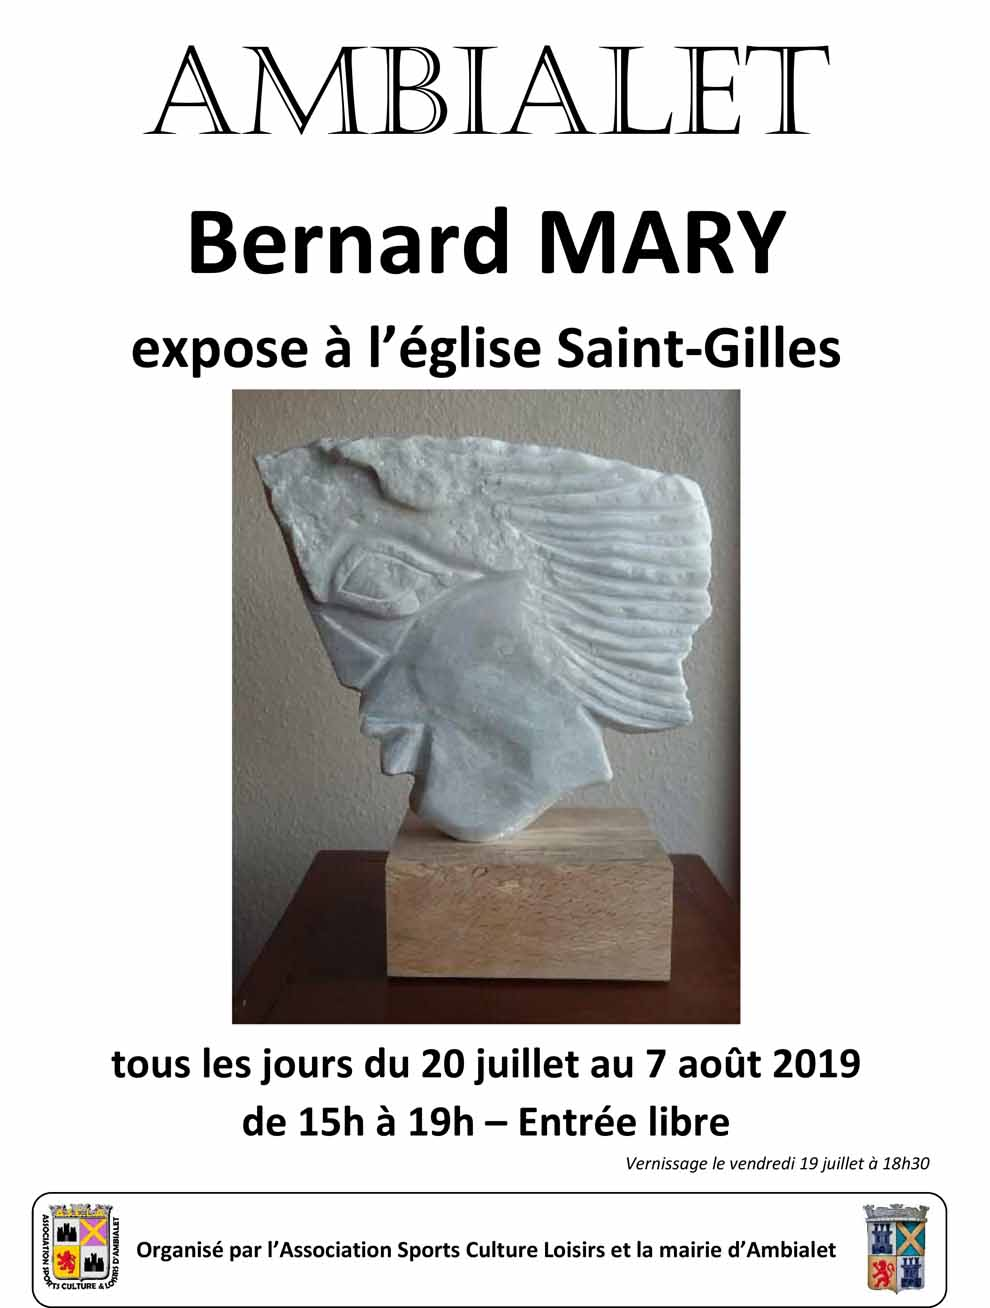 Bernard Mary